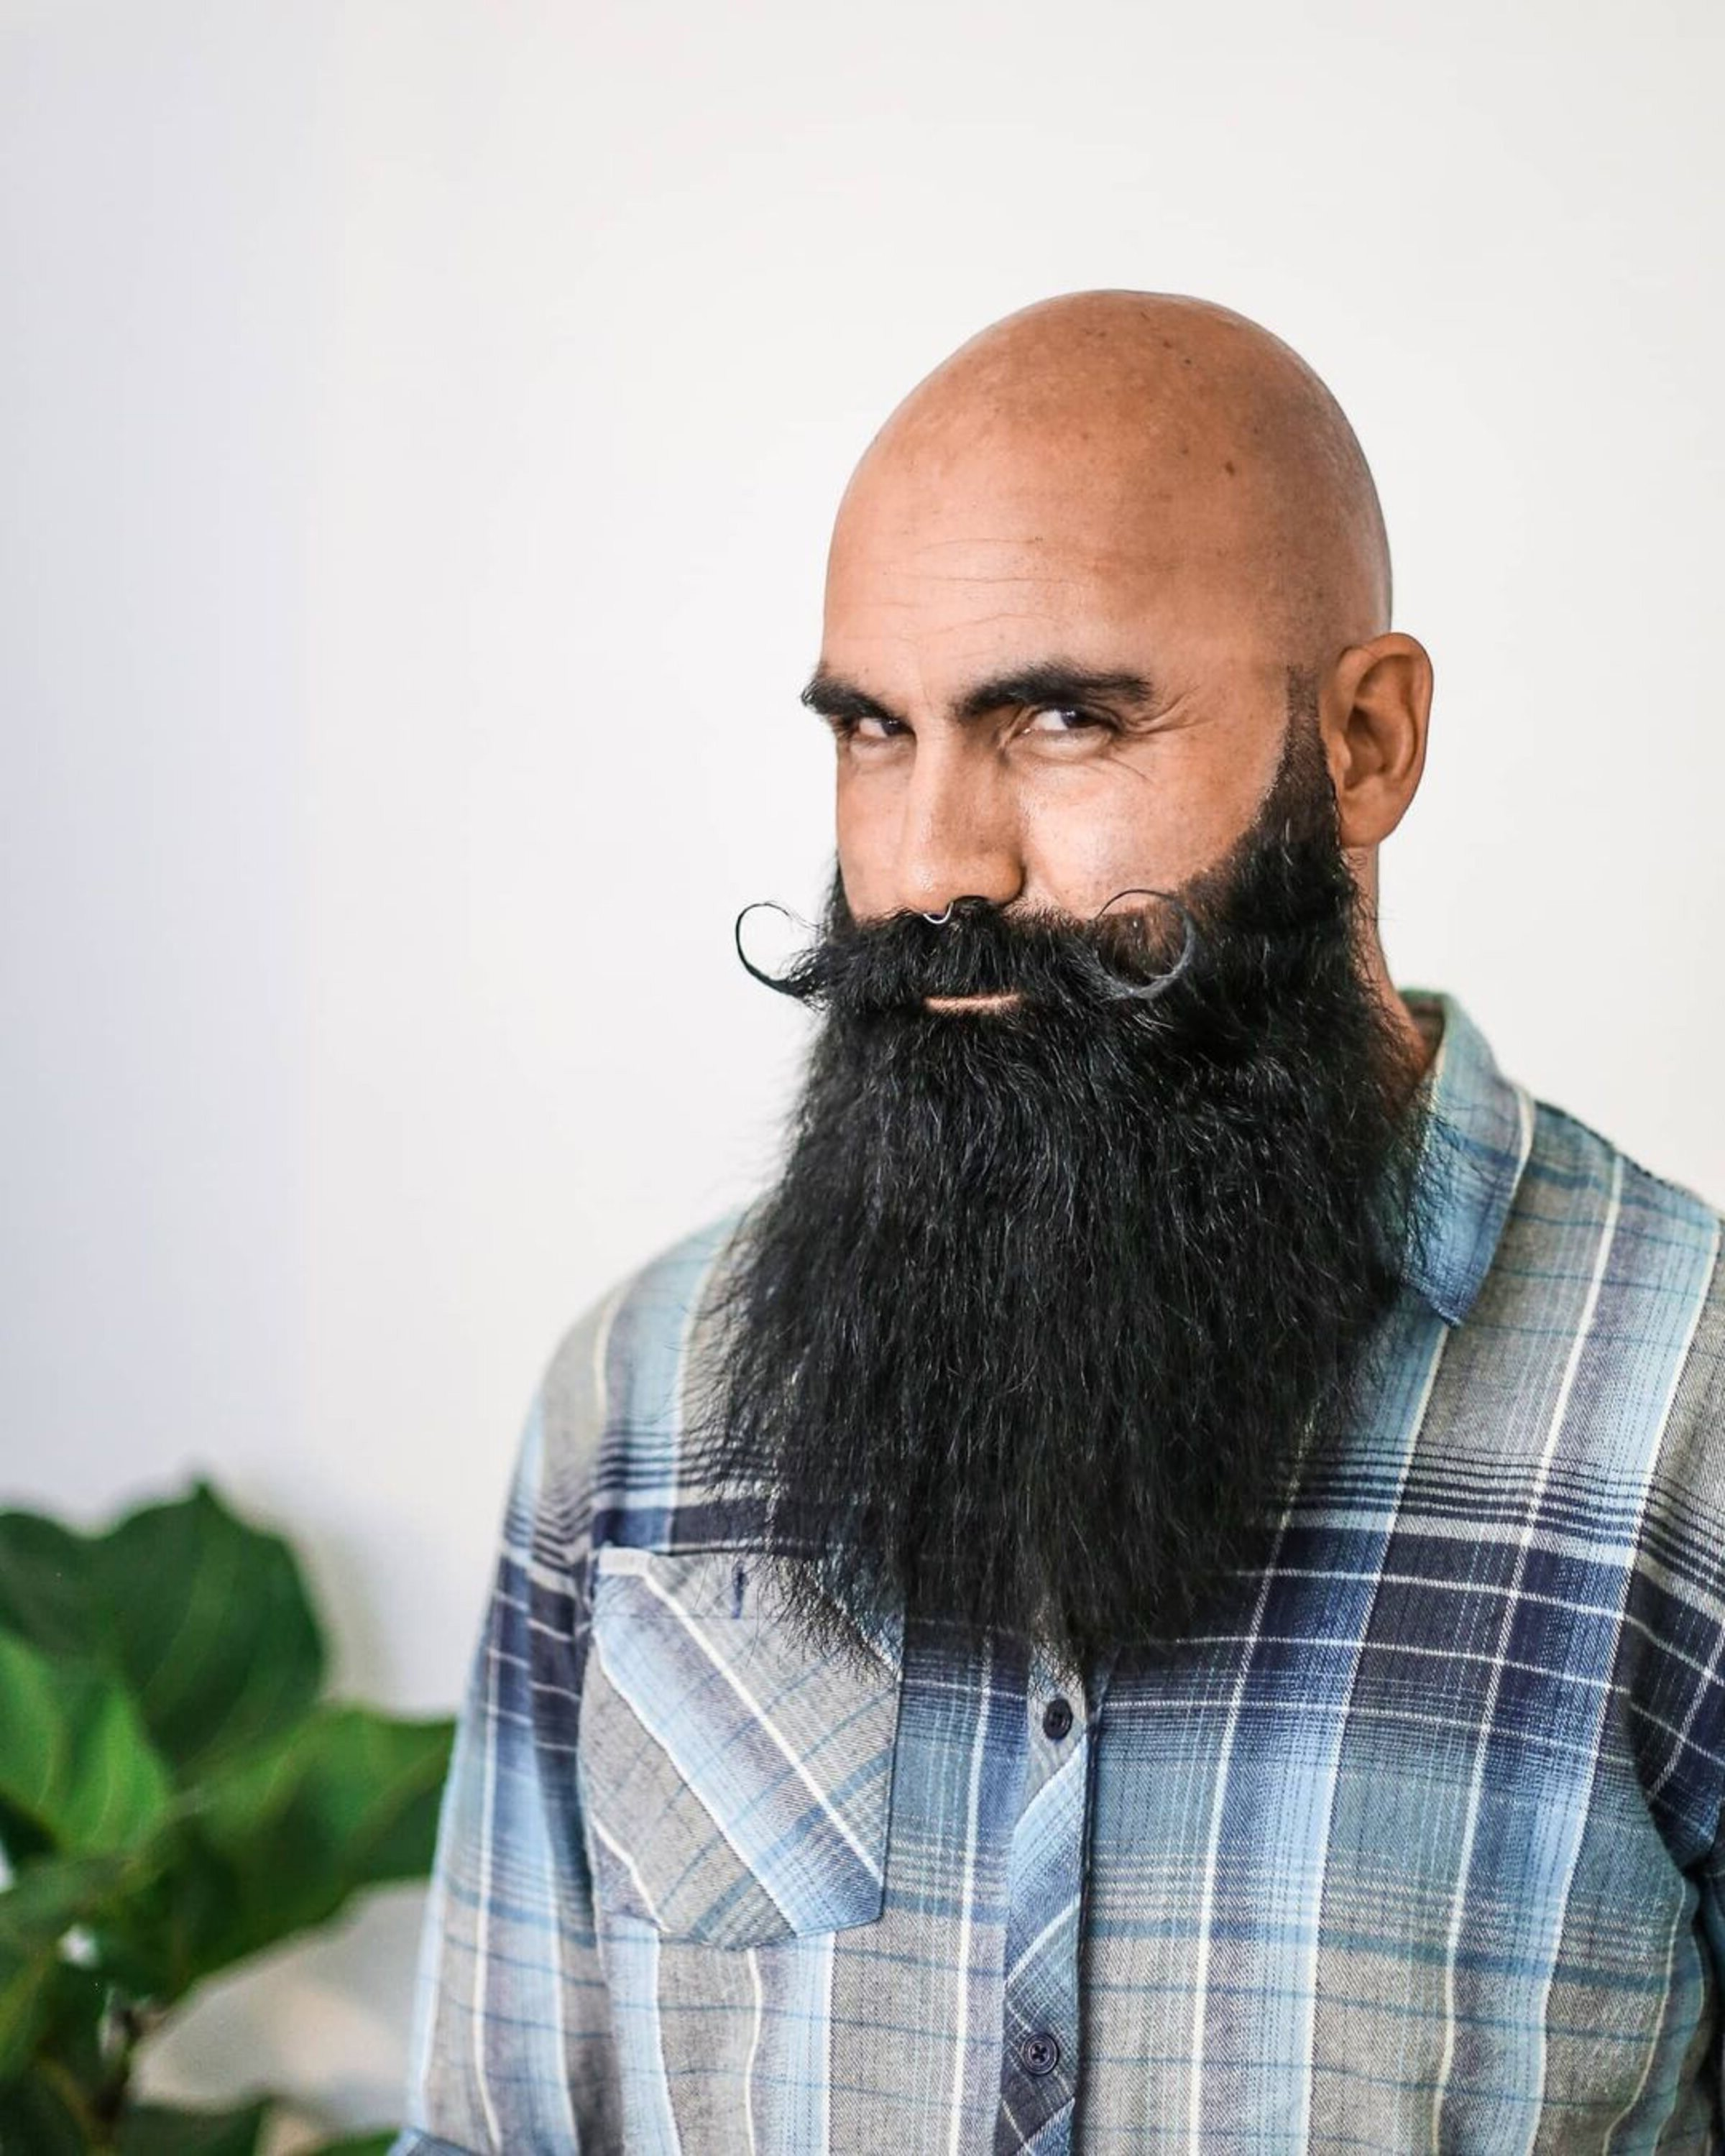 A full beard with a handlebar moustache for bald men.